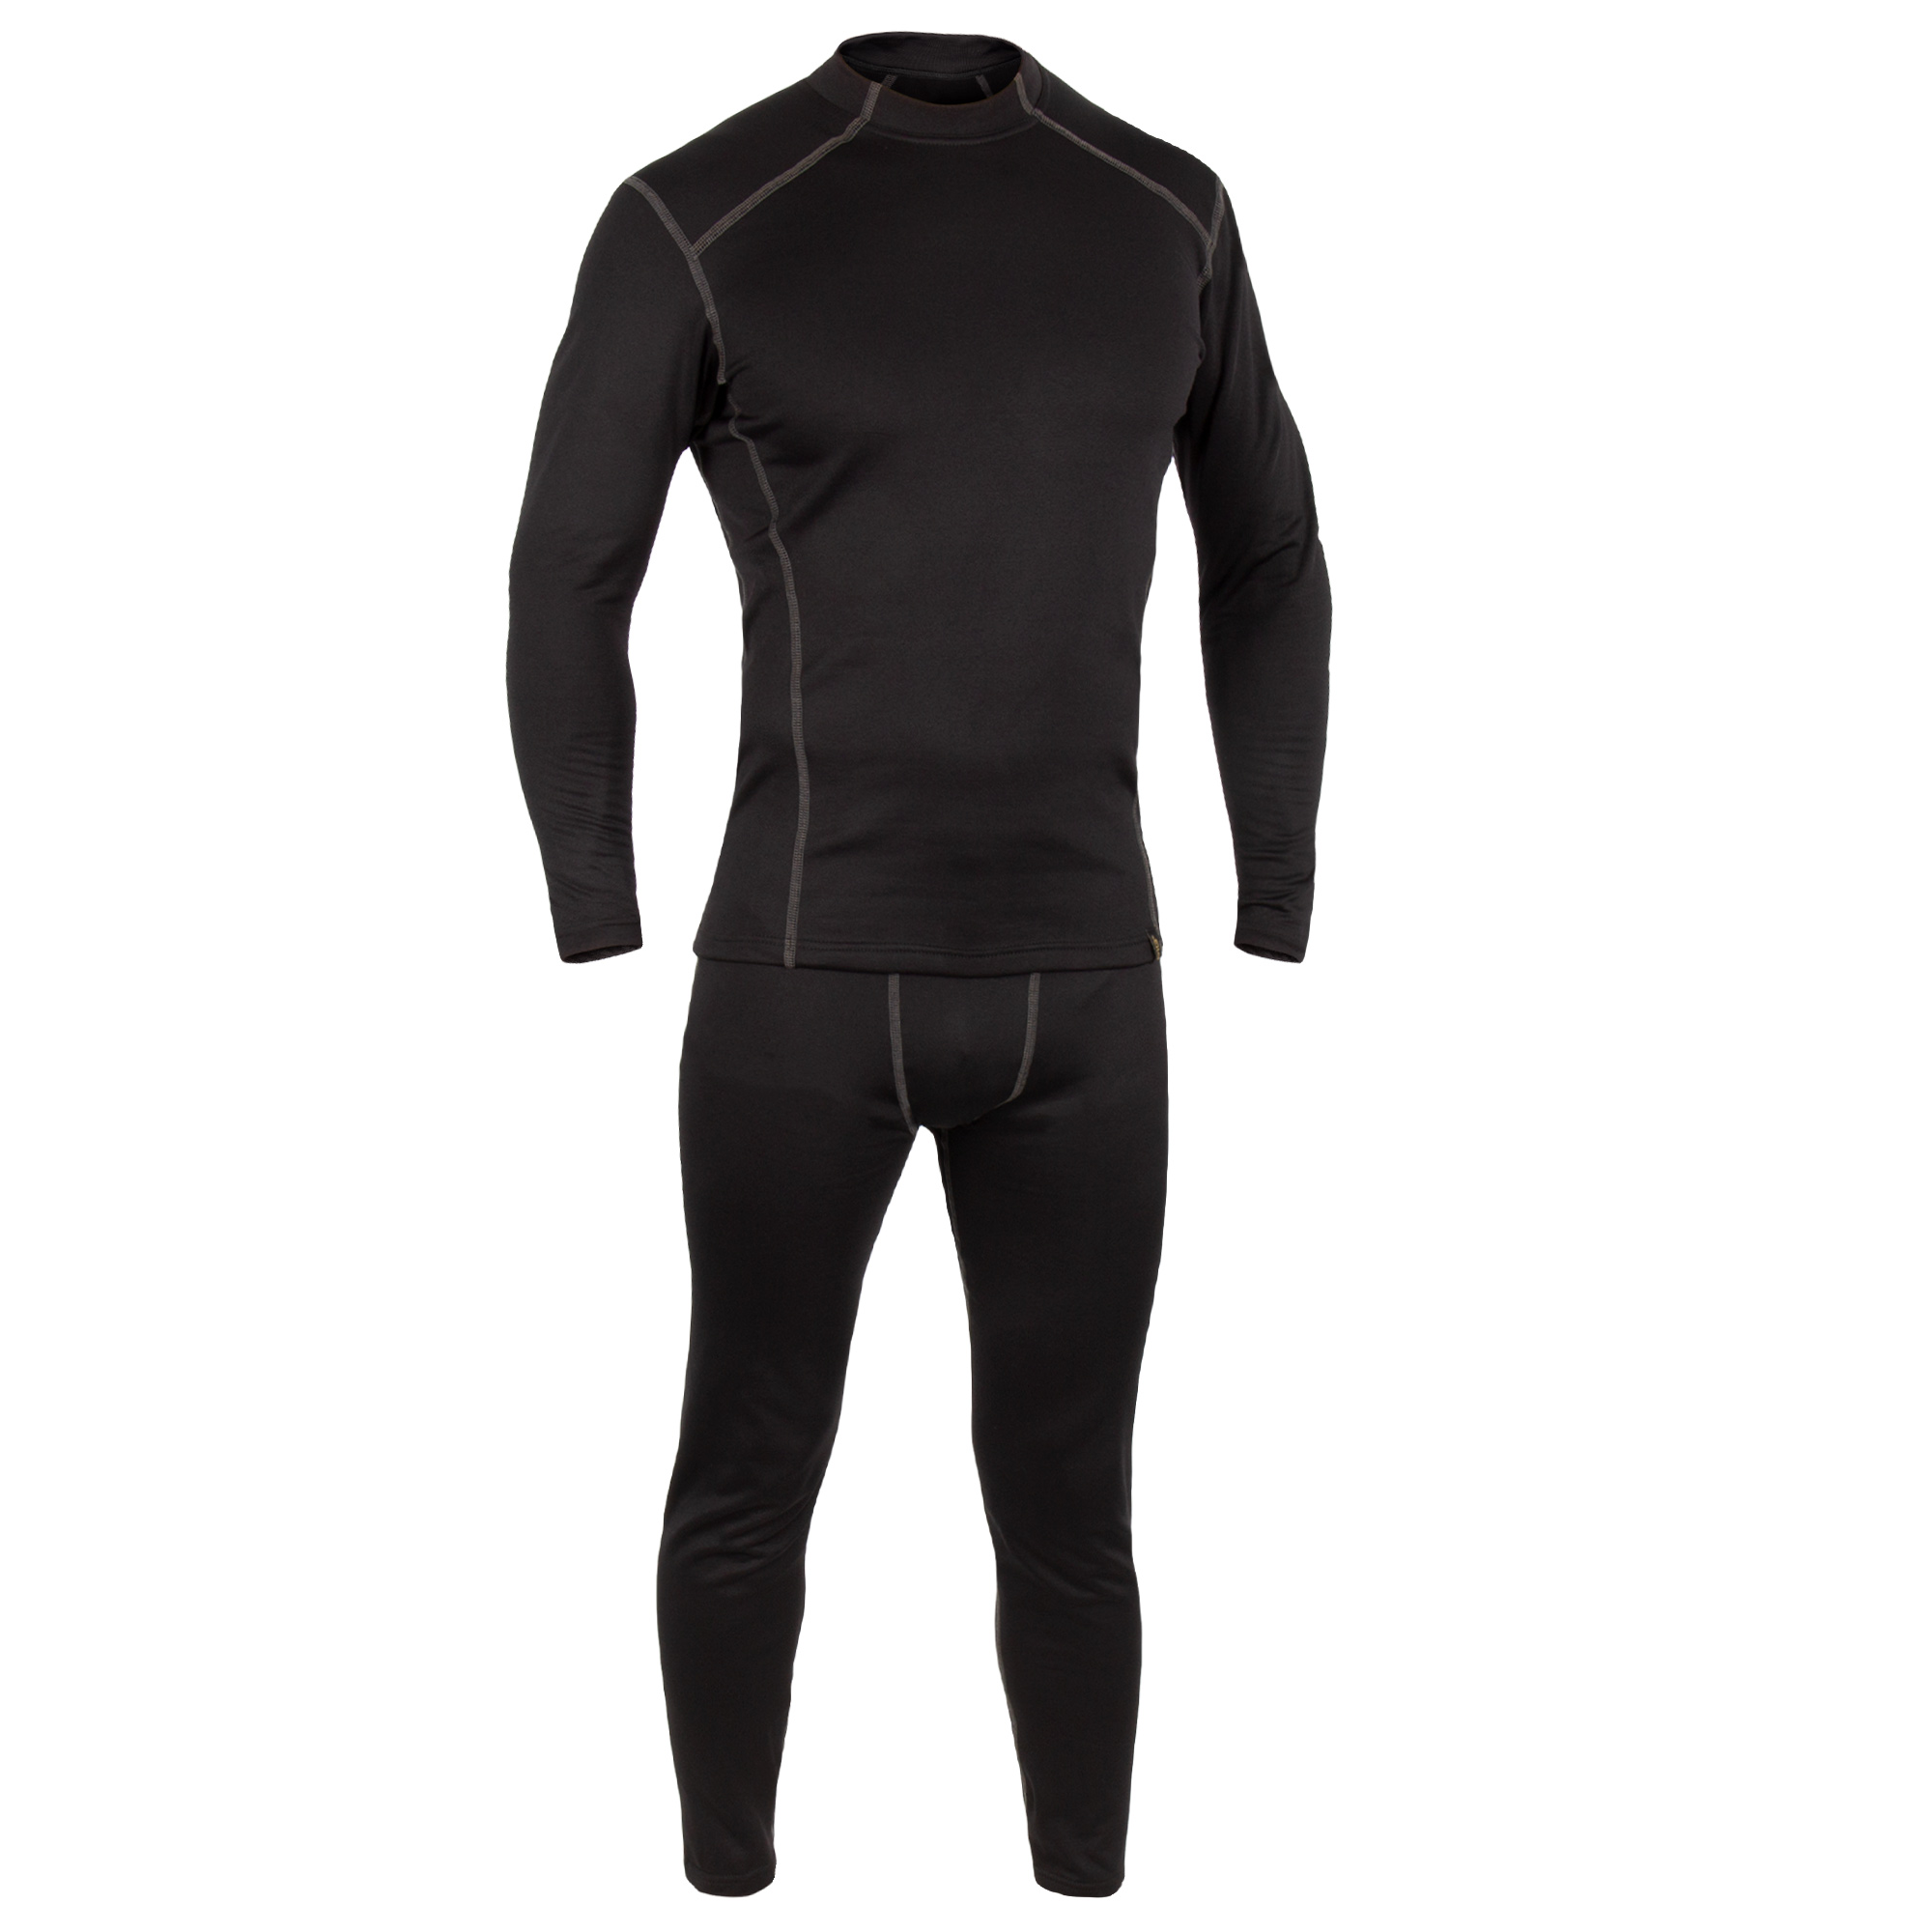 Baselayer suit